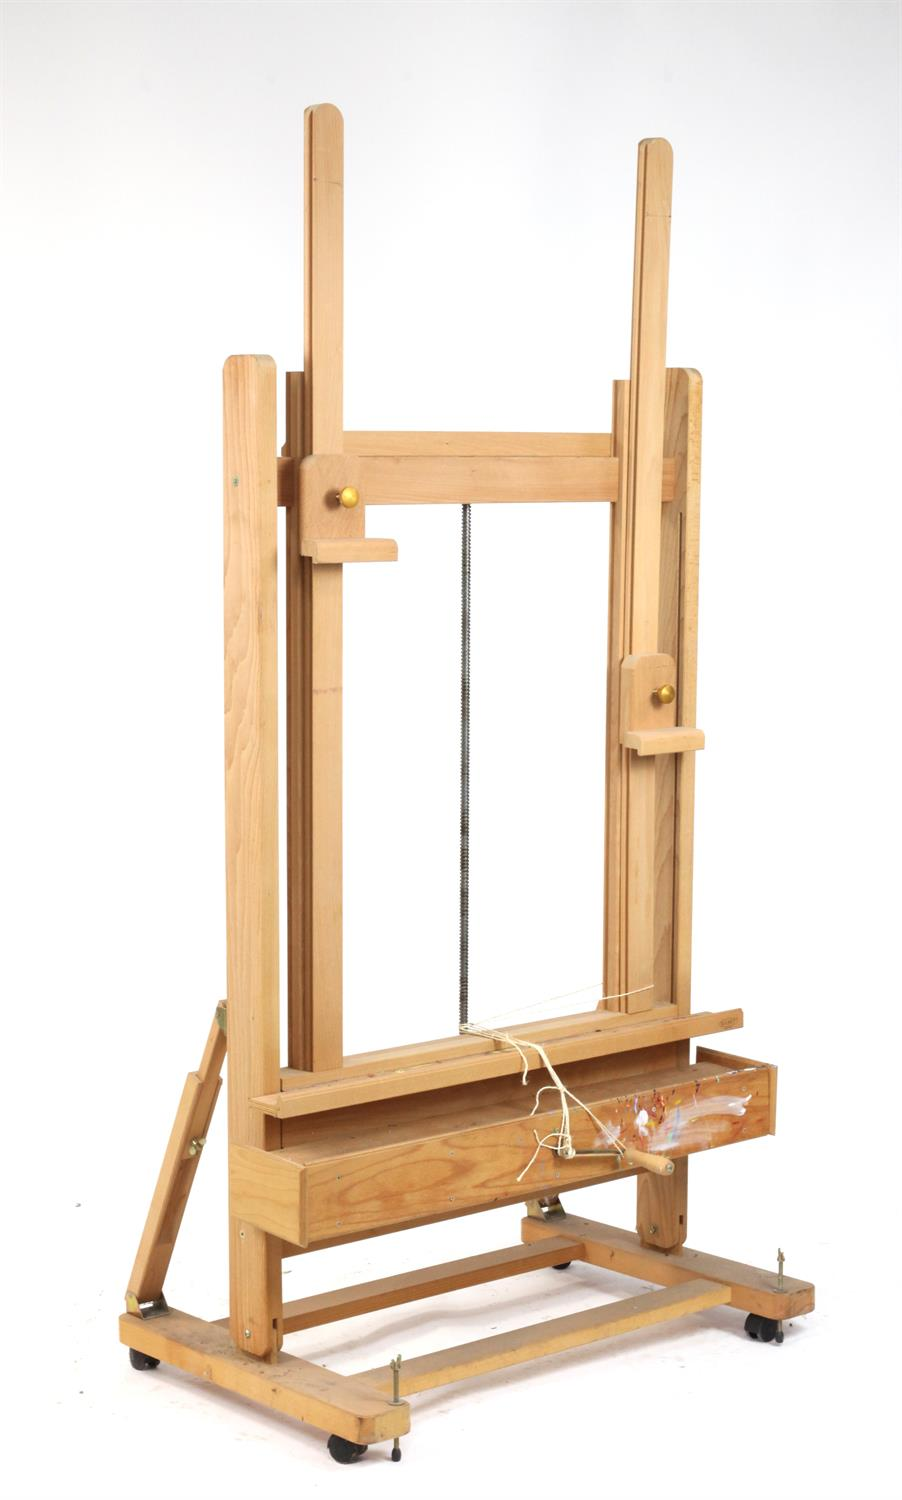 Large modern Italian adjustable artist's easel by Mabef, with two drawers, on castors, - Image 2 of 2